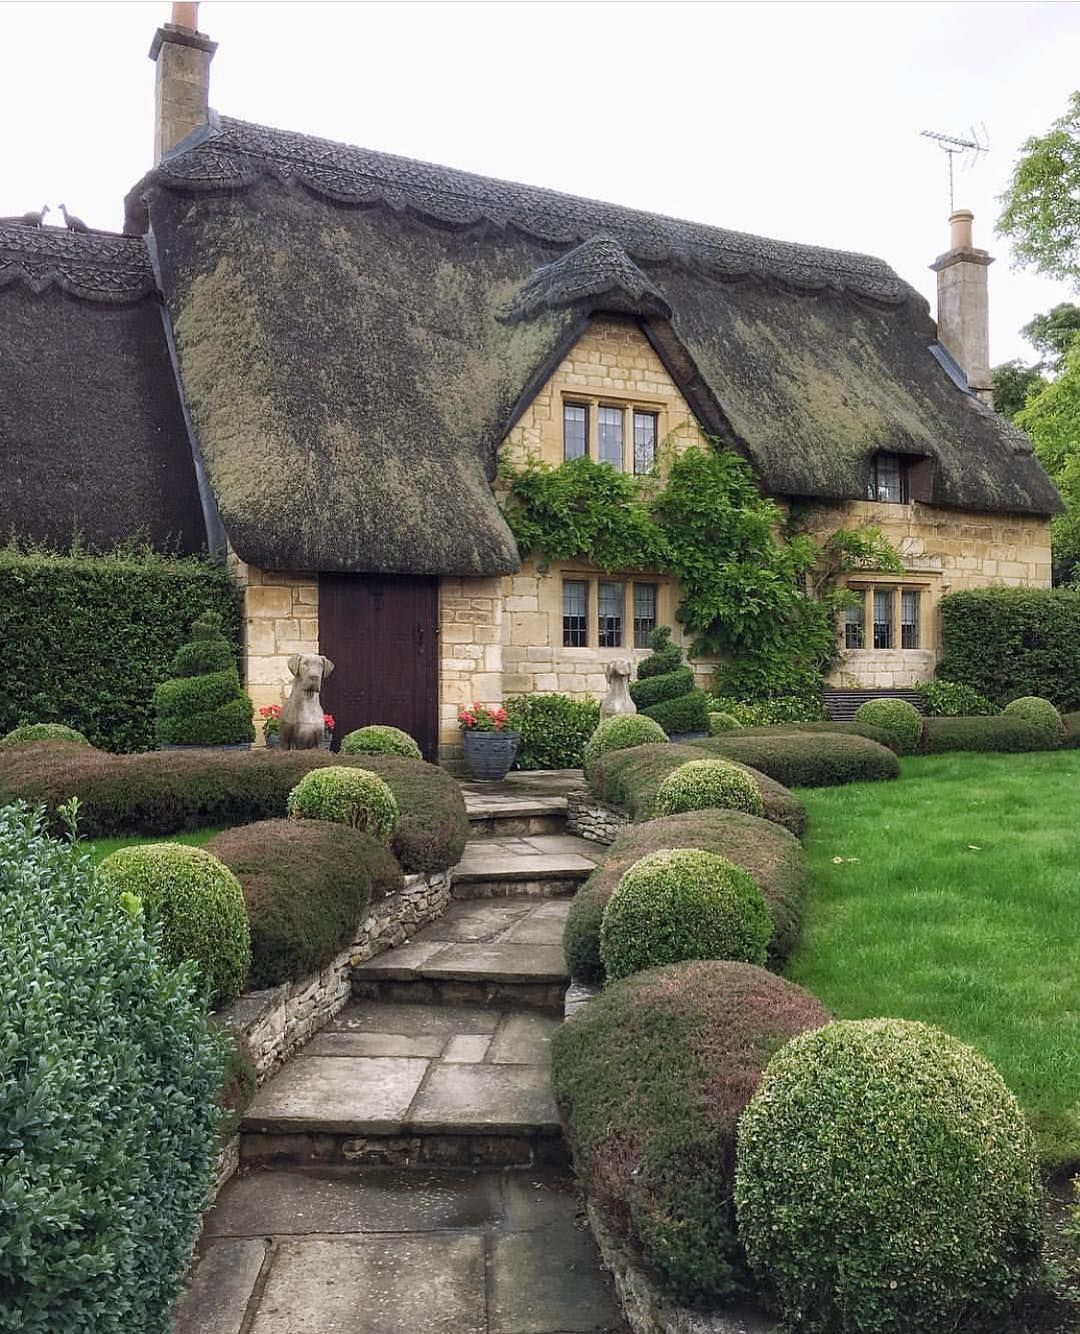 Places In Uk On Instagram Follow For More This Place Looks Amazing Tag Someone Who Needs T In 2020 Thatched Cottage Country Cottage Decor English Cottage